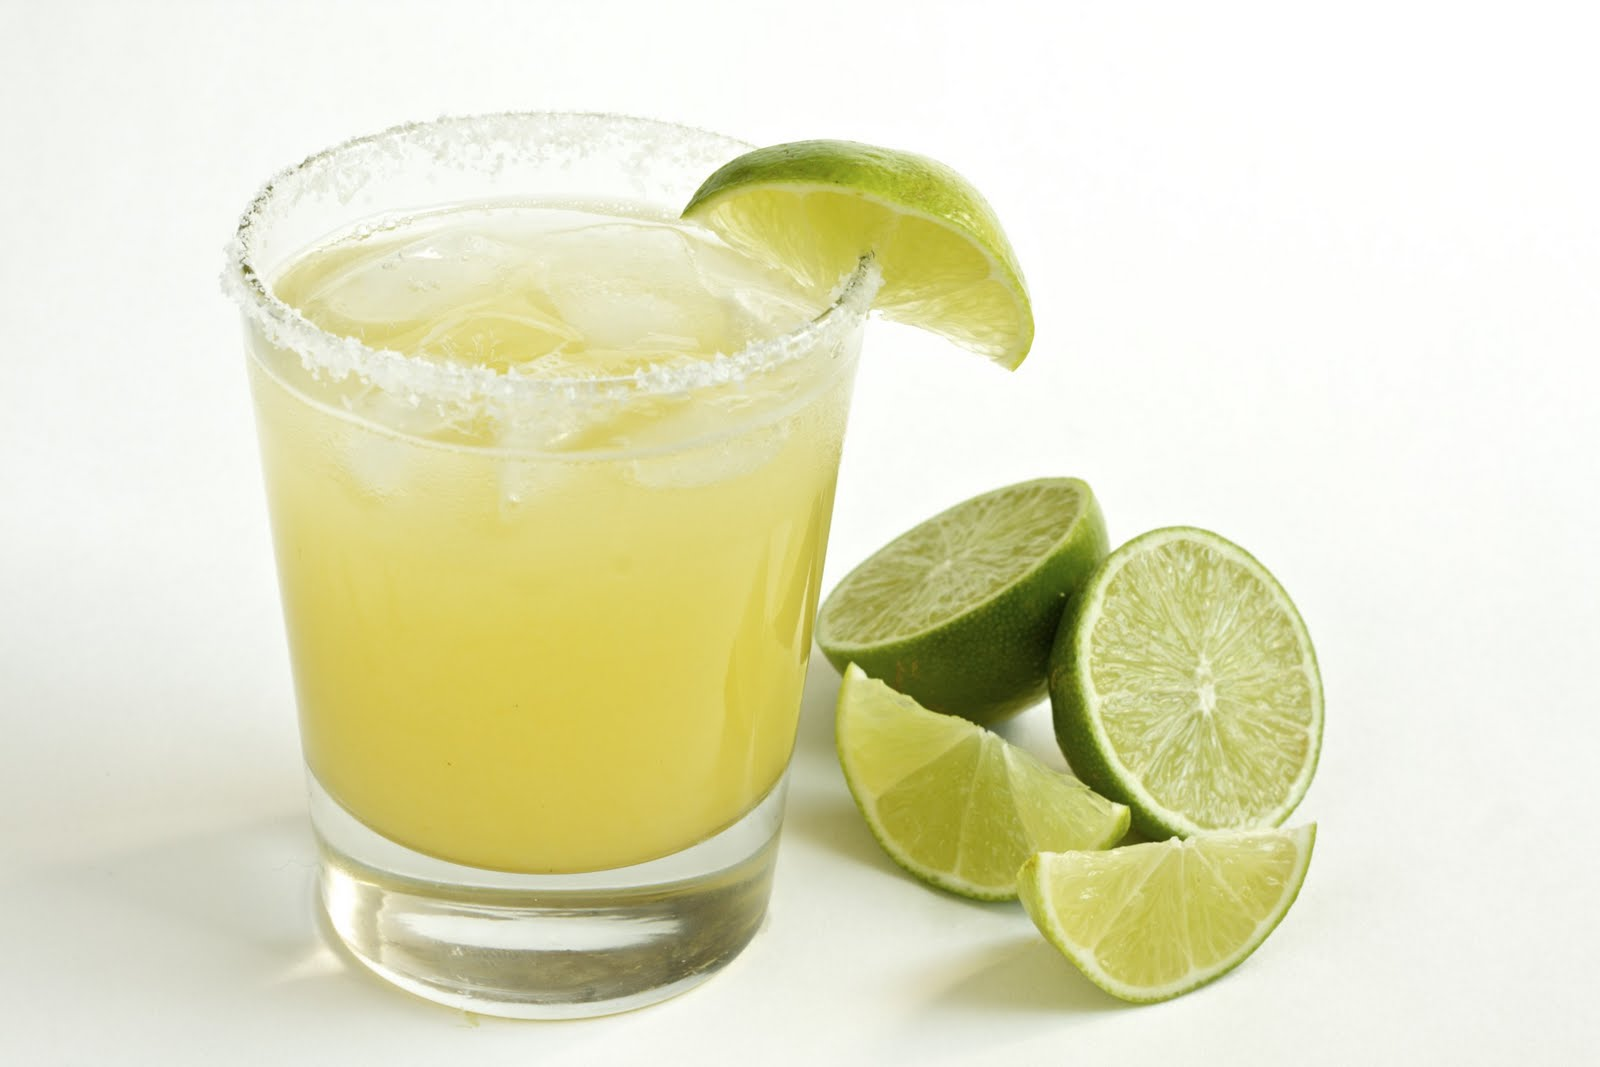 First up, the ultimate in summer time fun, the humble margarita.